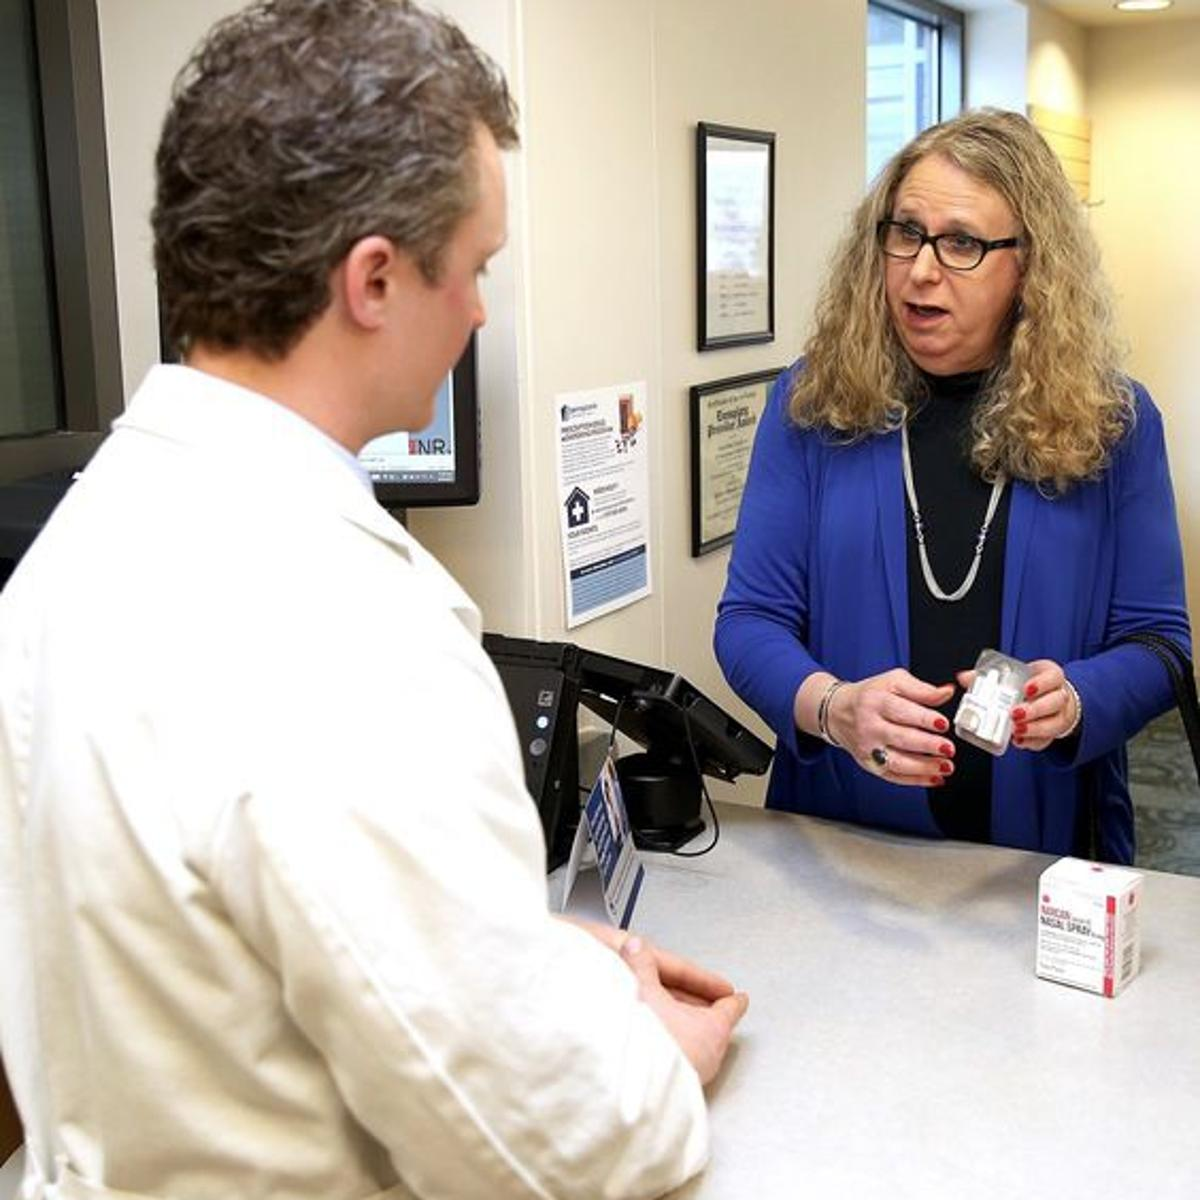 UPMC Susquehanna hosts Physician General to address opioid